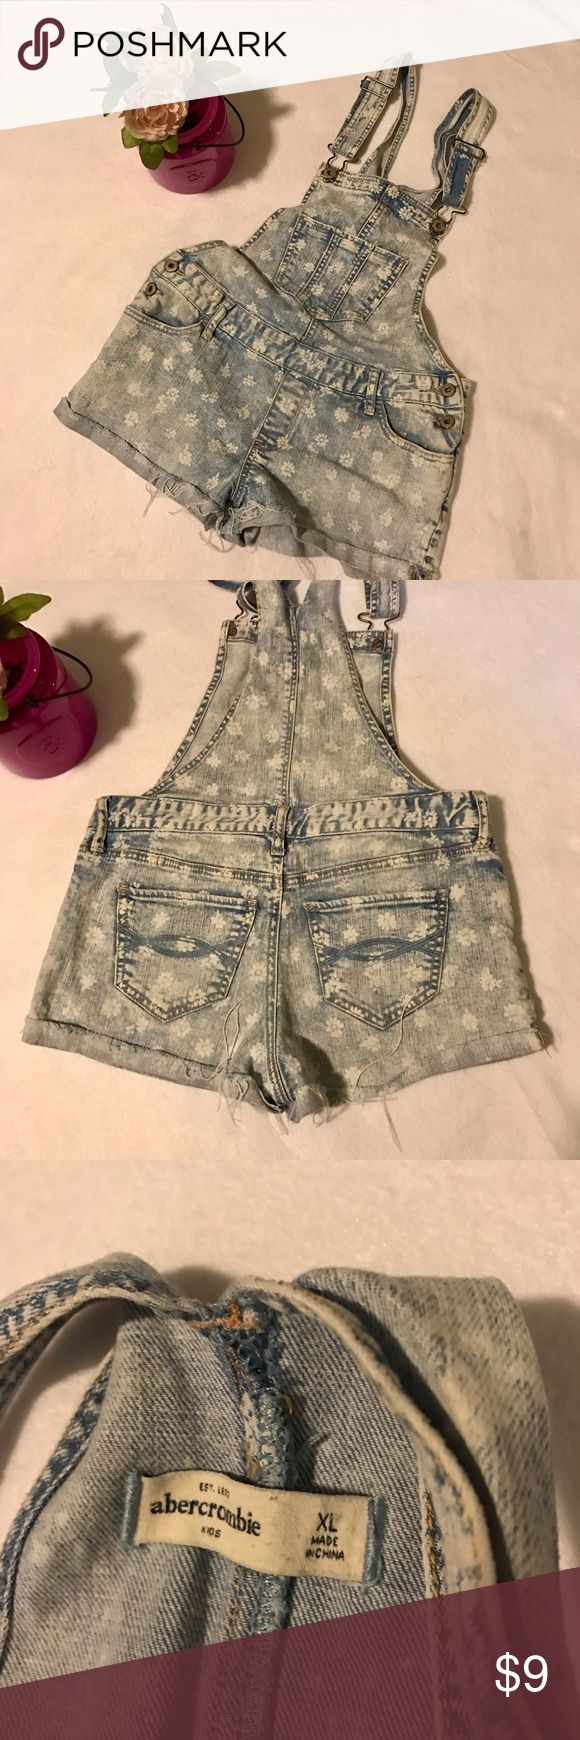 Abercrombie Kids girls overall Shorts XL Adorable distressed Abercrombie girls short overalls. Very cute- Size XL- I would think would fit 10-14? Flower print and distressed cuffed style. abercrombie kids Bottoms Overalls